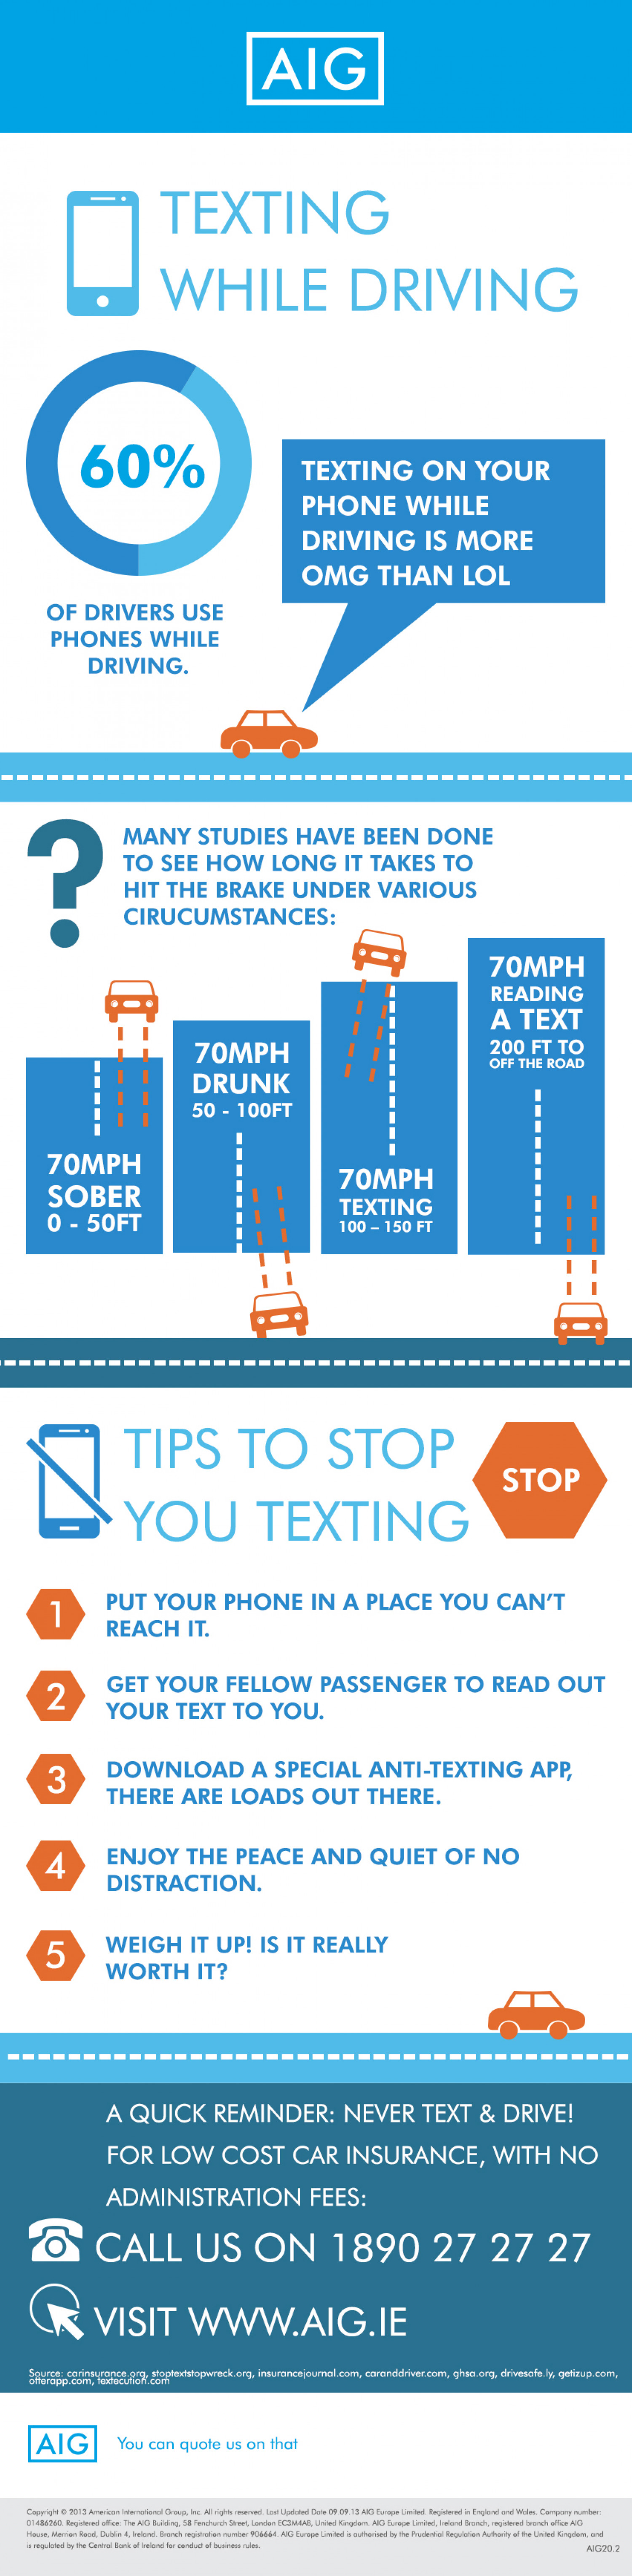 Texting While Driving - An Infographic Infographic